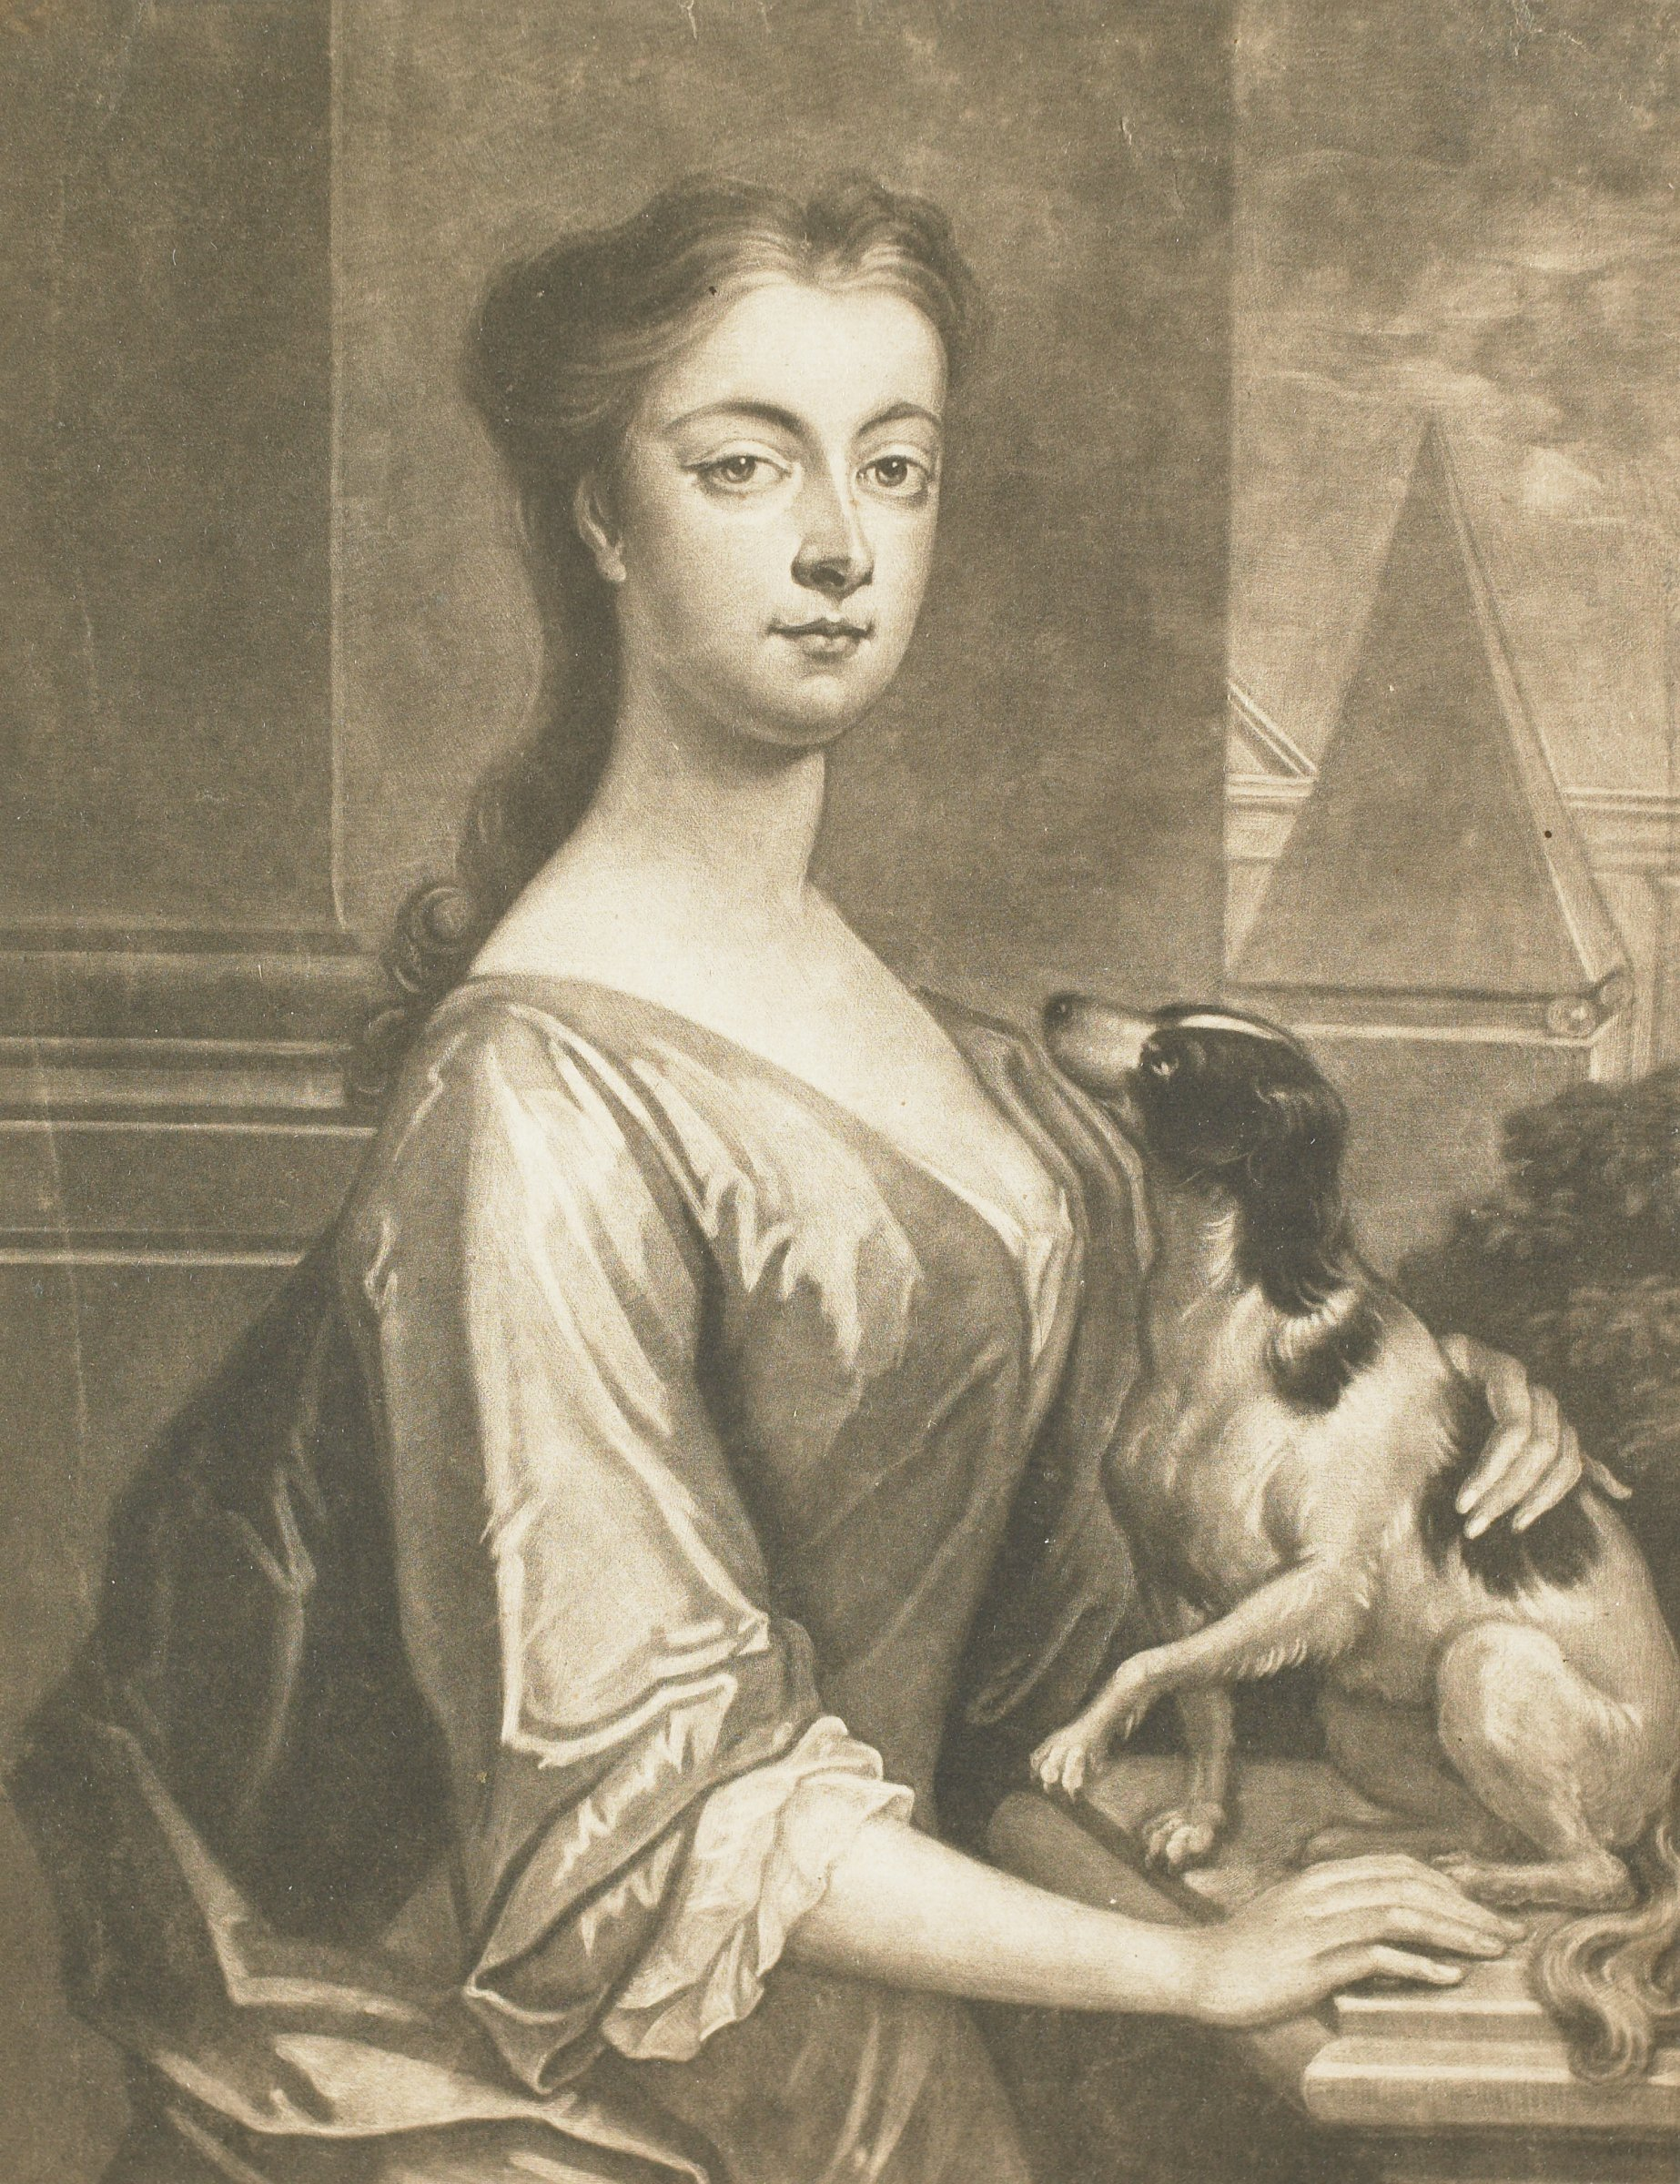 The Duchess of Montagu is shown here in three-forths portrait with a dog looking up at her. She stands infront of a window that displays architectural elements in the background.